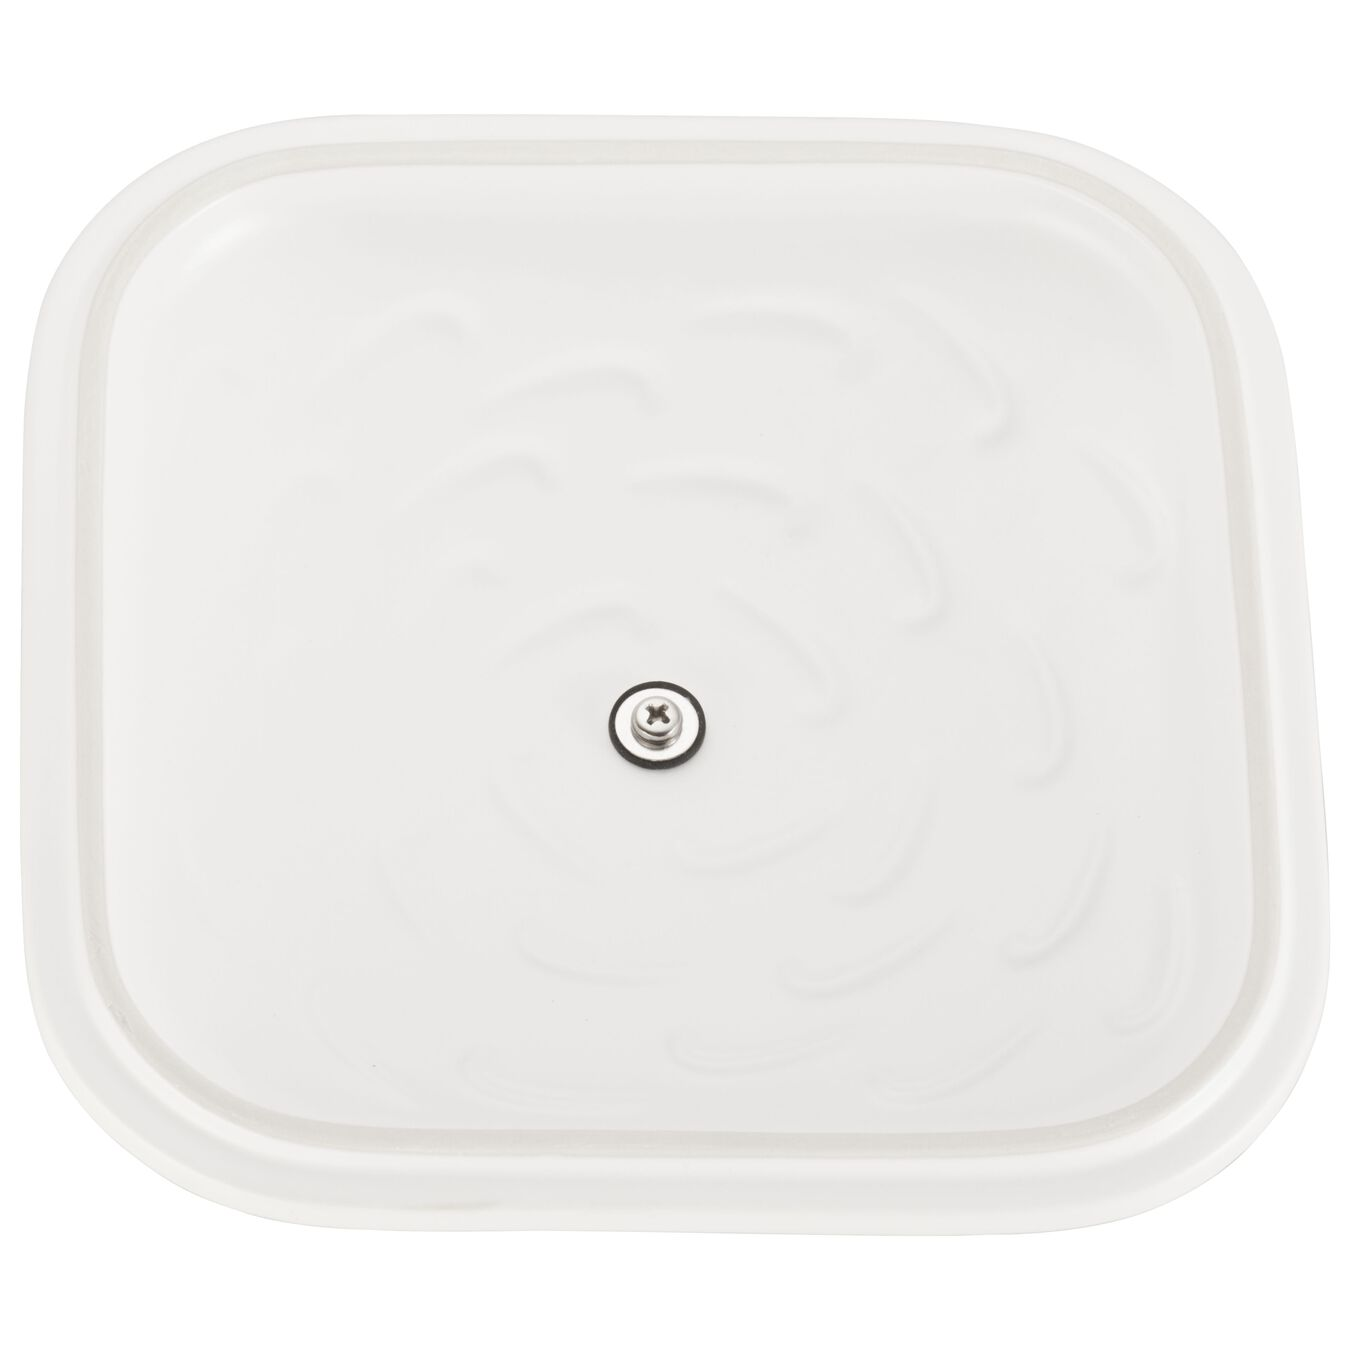 9-inch X 9-inch Square Covered Baking Dish - Matte White,,large 5